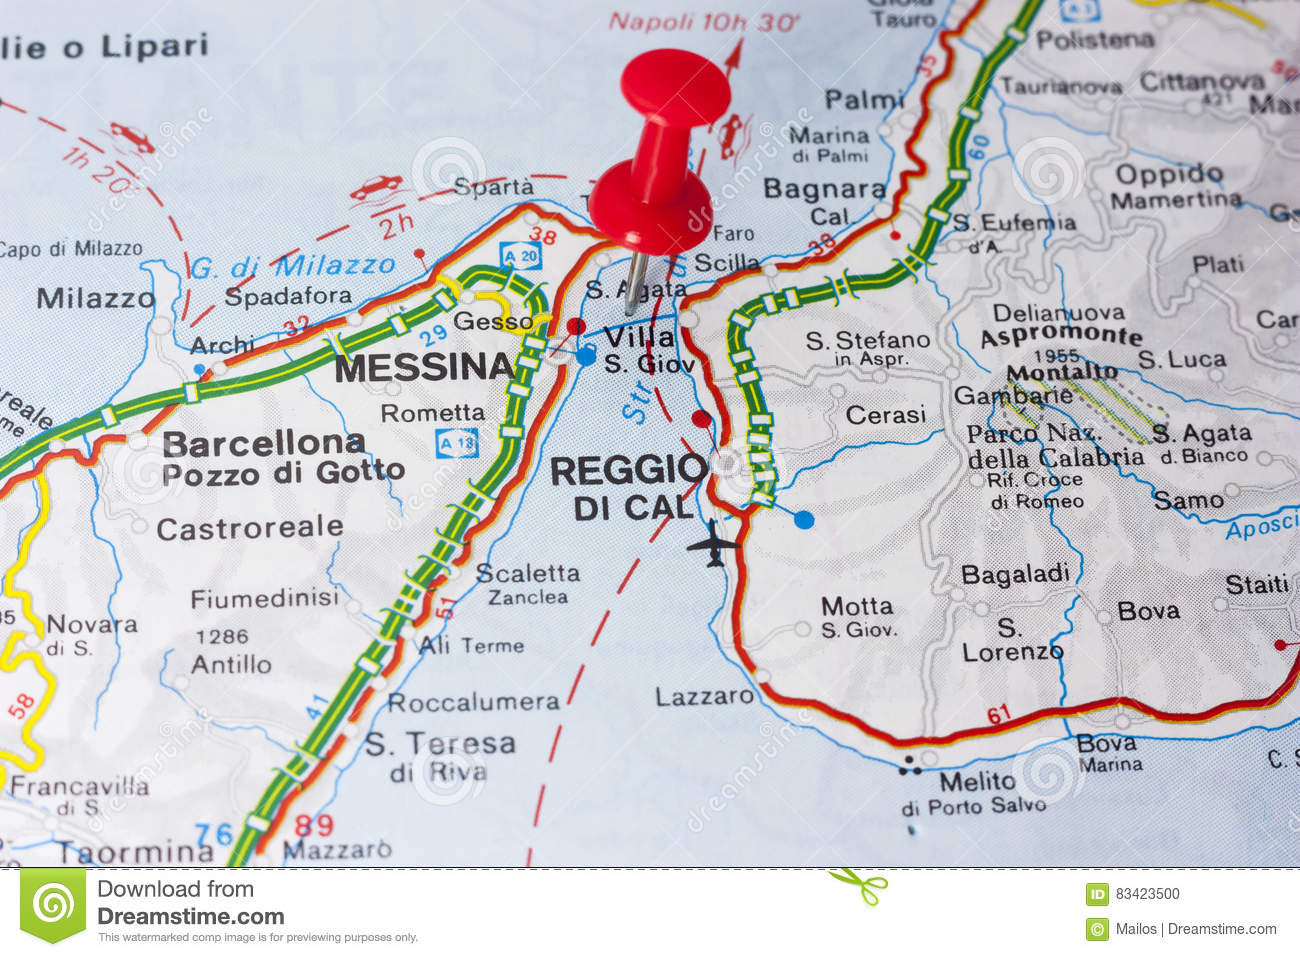 Villa San Giovanni Or The Strait Of Messina Italy On A Map Stock